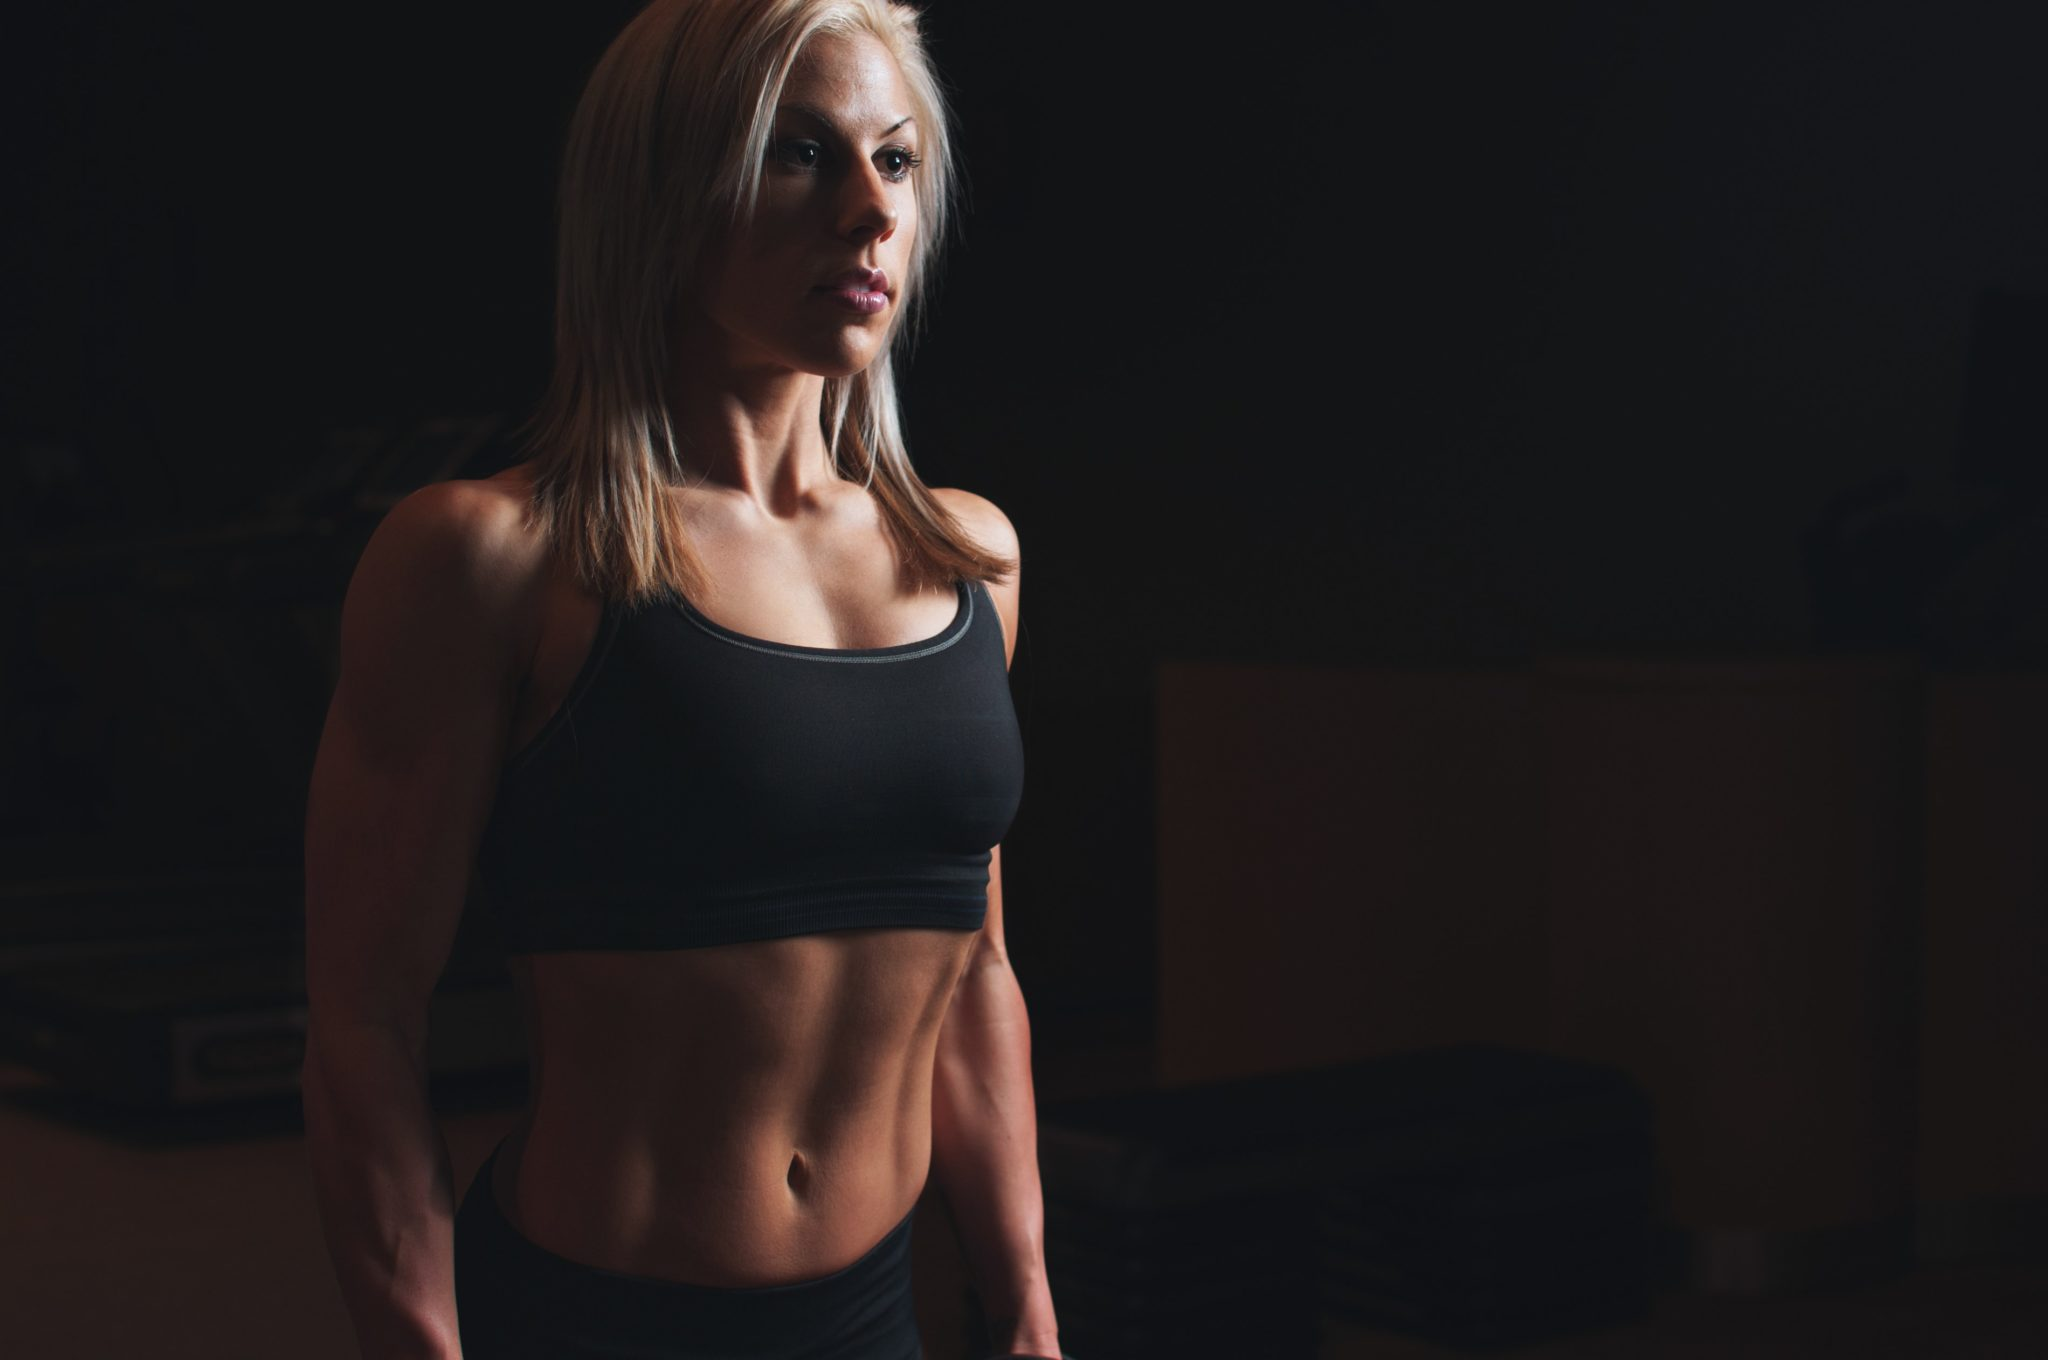 Ways to Get Perfect Woman Body - Mind your workout